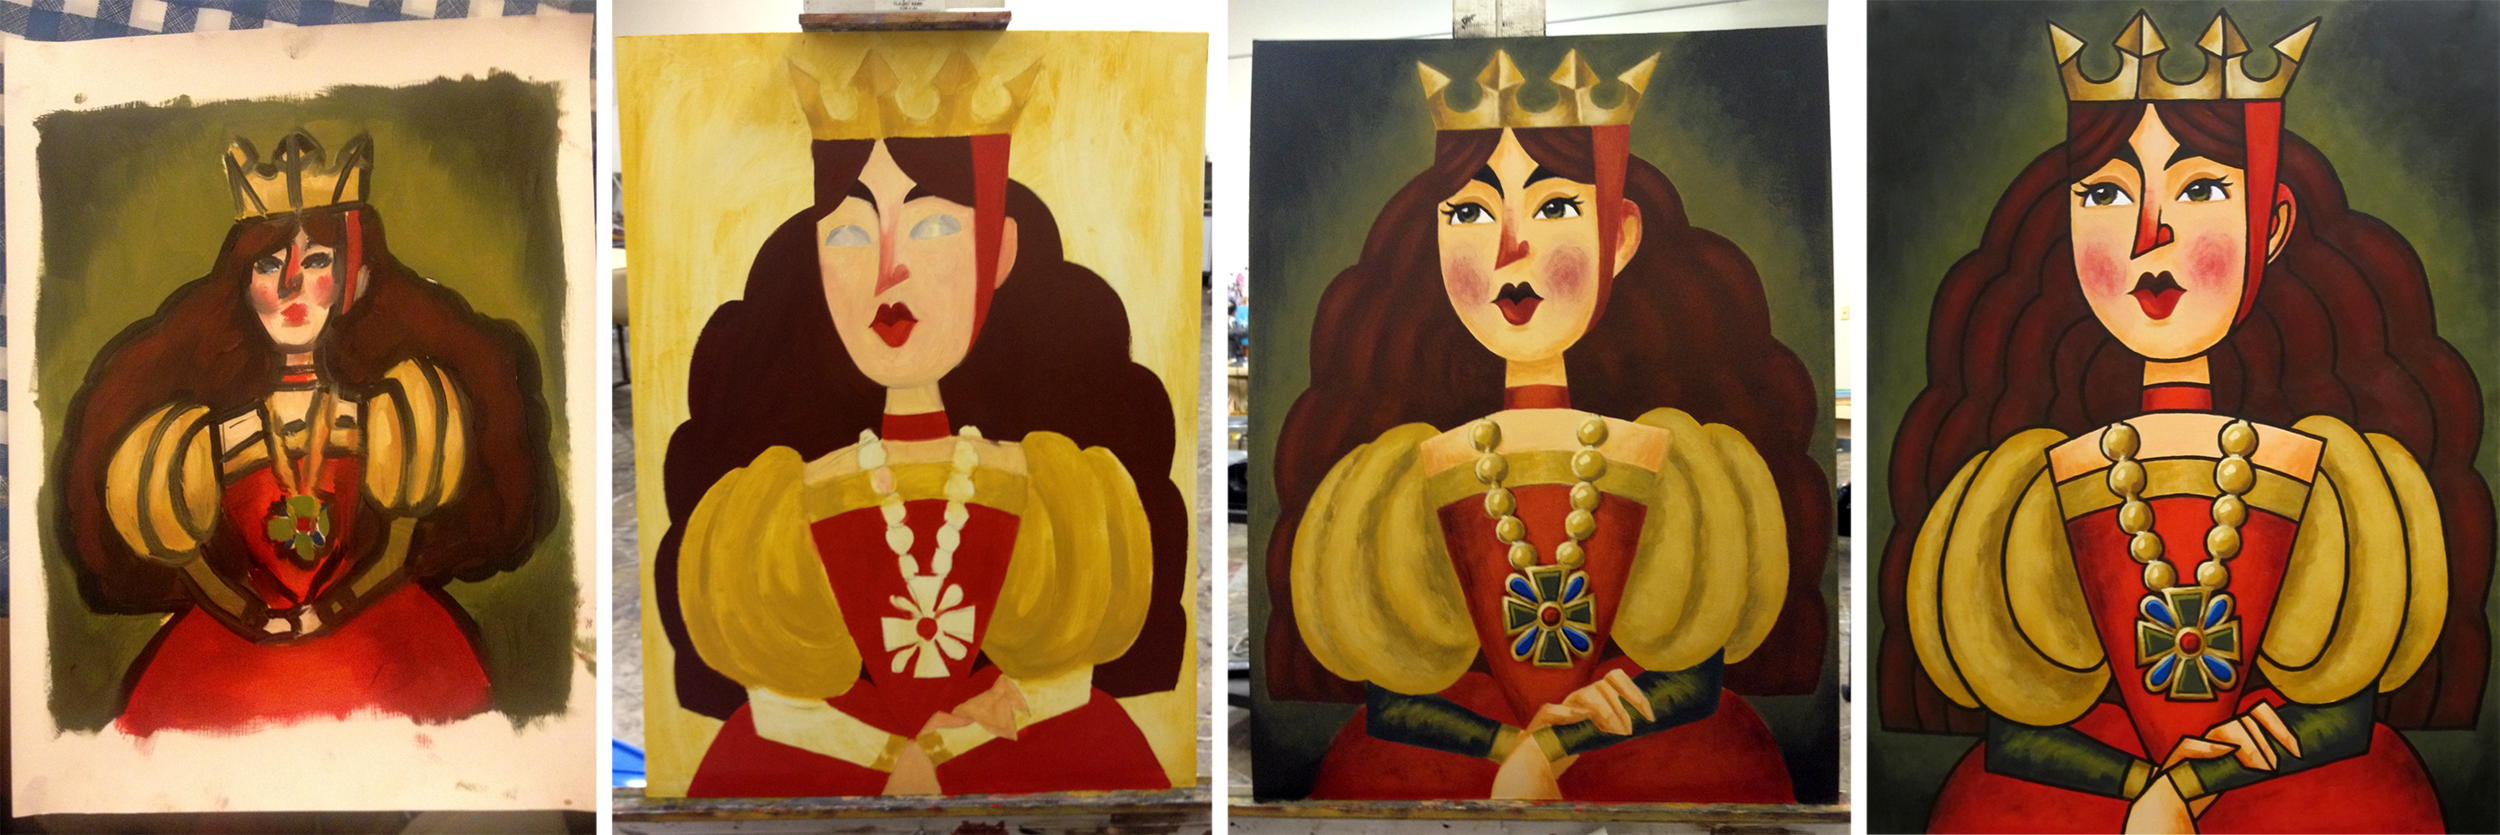 queen-painting-process